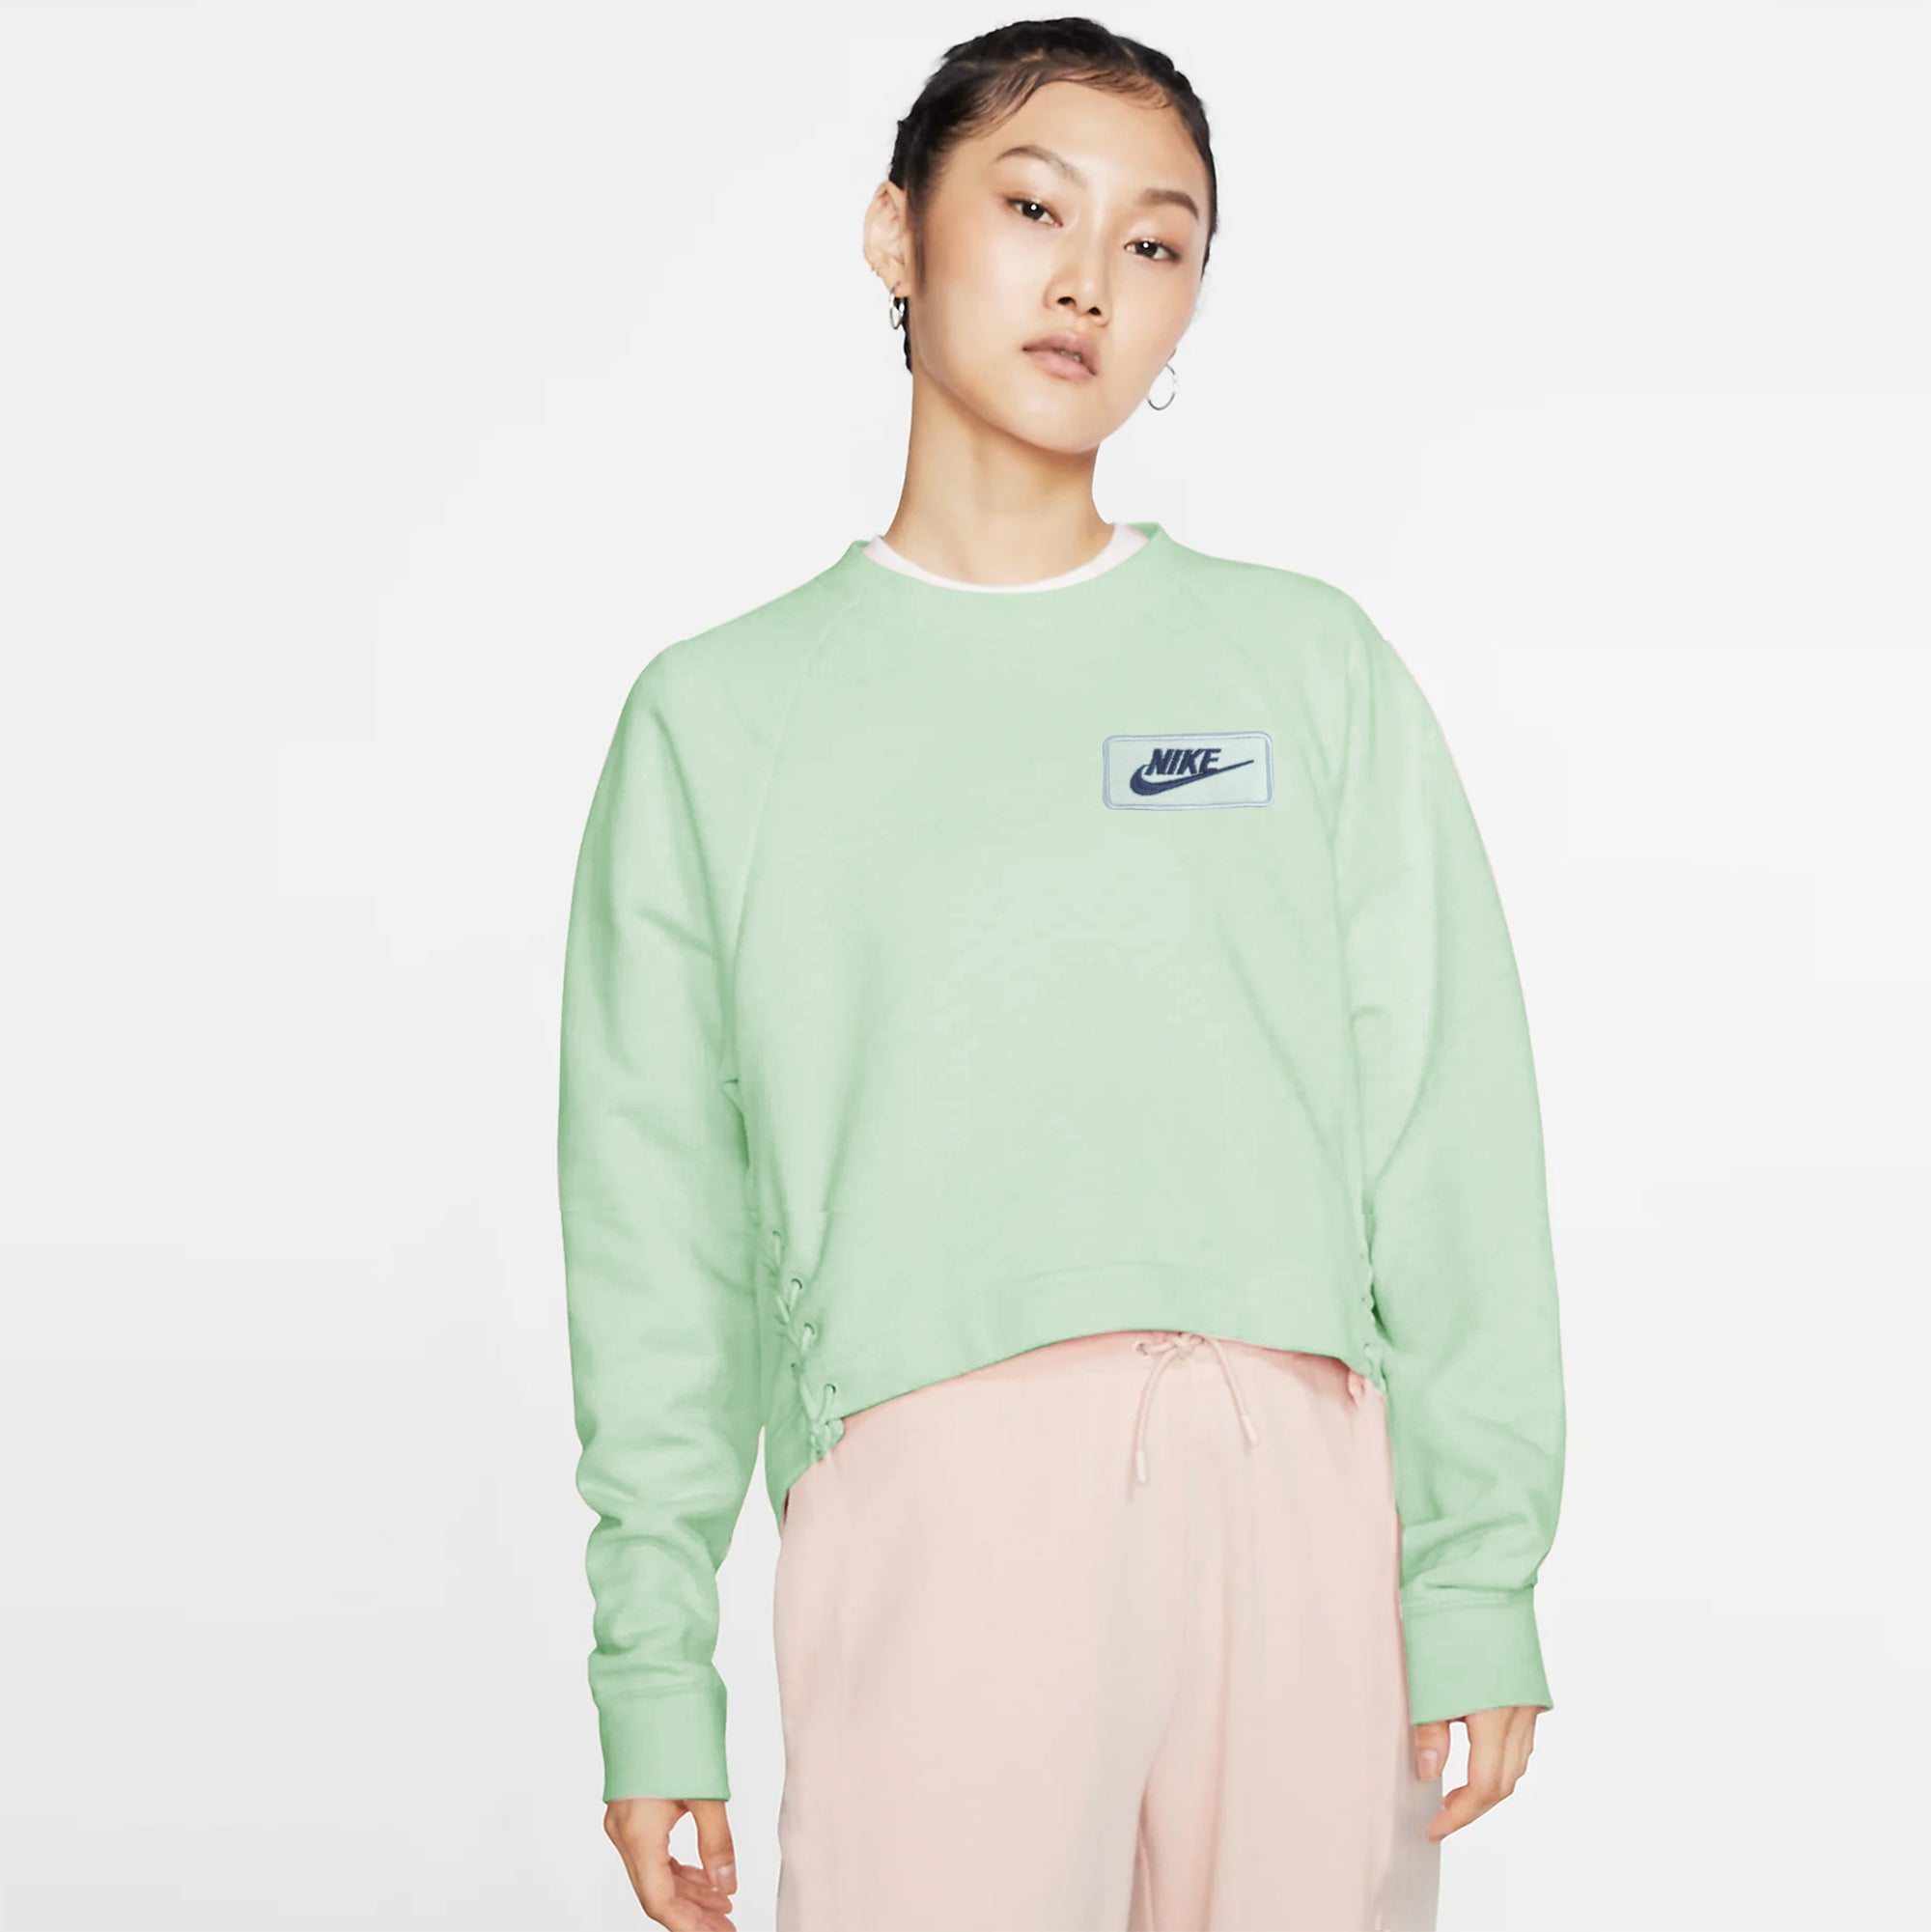 NK Terry Fleece Raglan Sleeve Crop Sweatshirt For Women-Light Cyan -SP1046